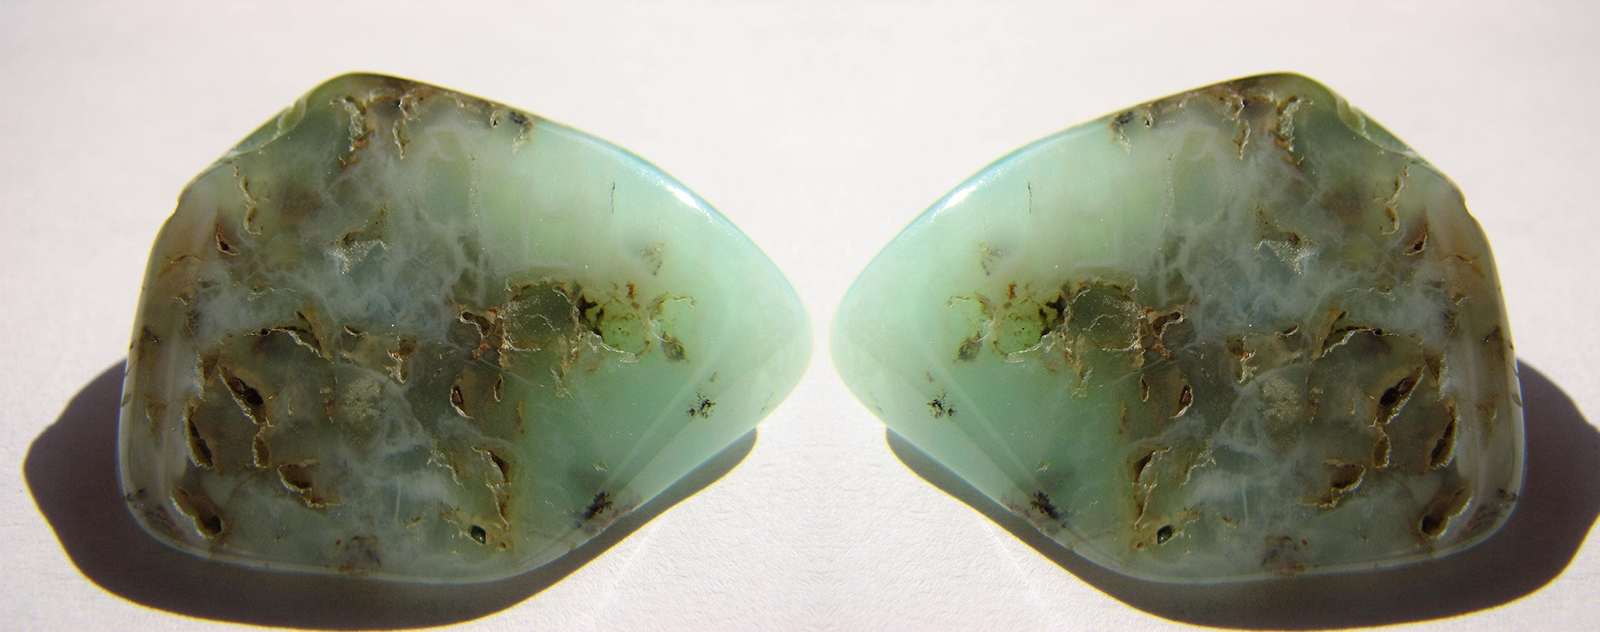 chrysoprase value